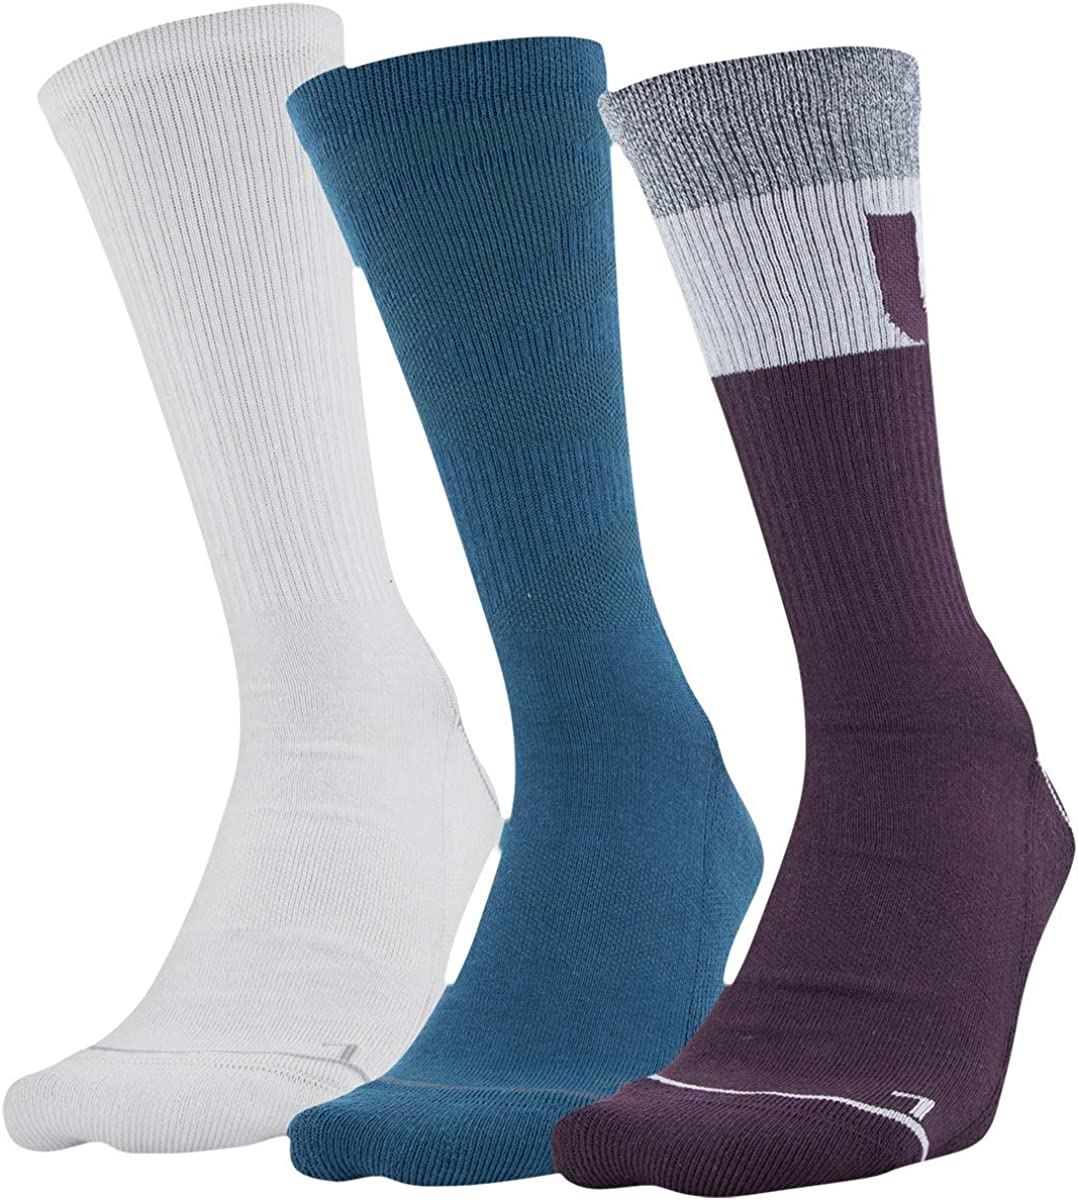 Under Cheap mail order shopping Armour Women's Phenom 3-pairs Socks NEW before selling ☆ Graphic Crew